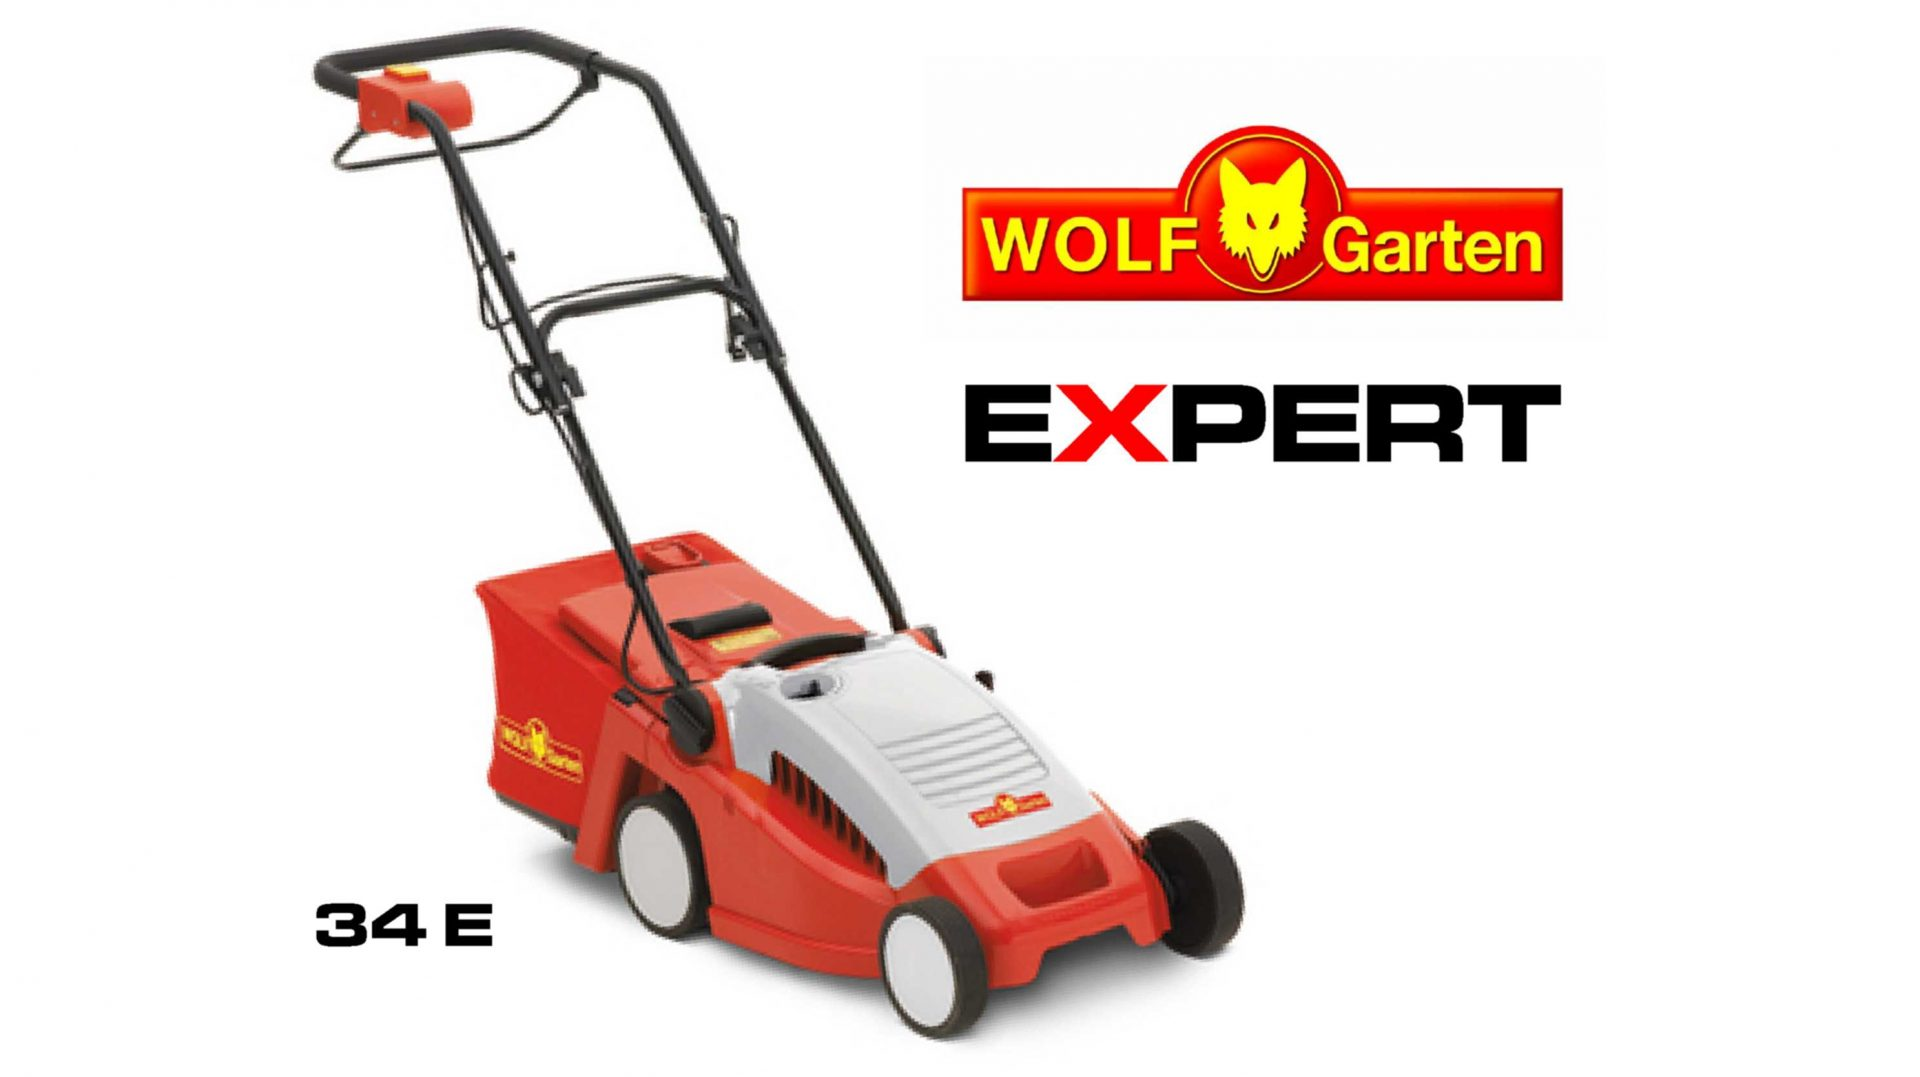 wolf garten expert 34 e elektro rasenm her s llner motorger te gmbh. Black Bedroom Furniture Sets. Home Design Ideas